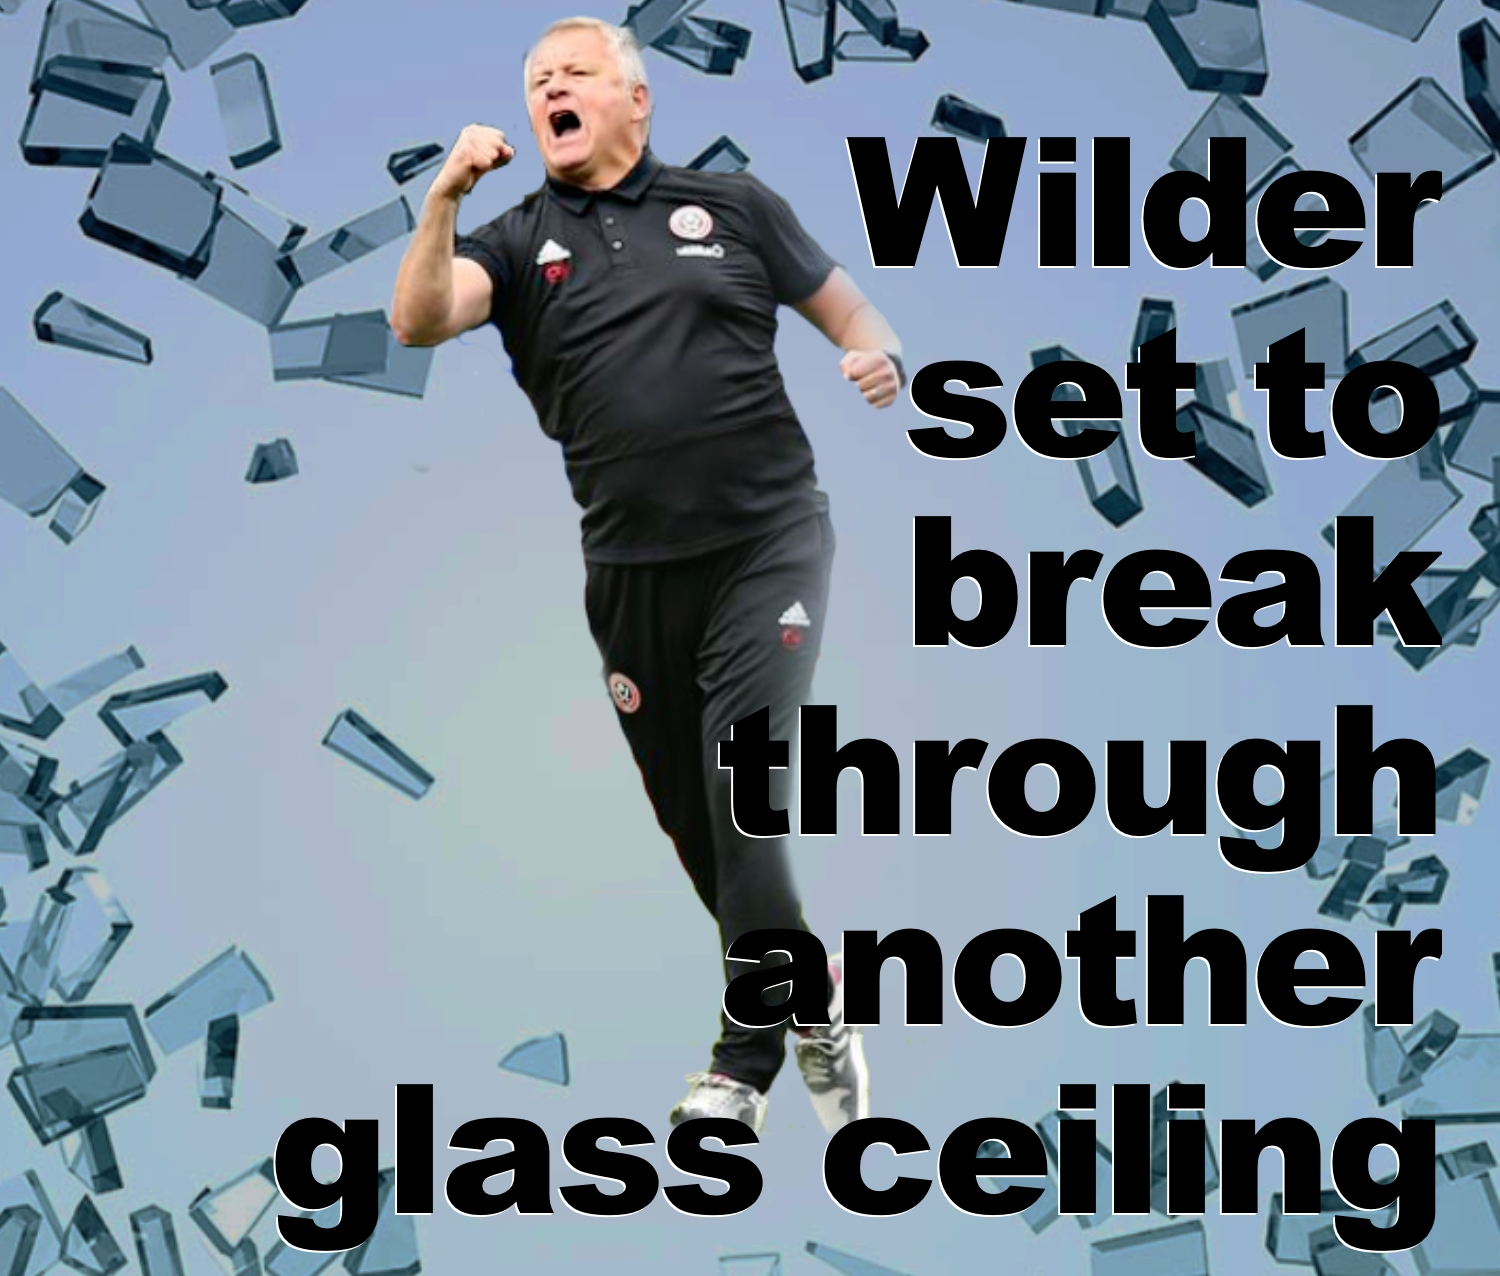 Sheffield United boss Chris Wilder all set to break through another glass ceiling for the Blades at Bramall Lane.